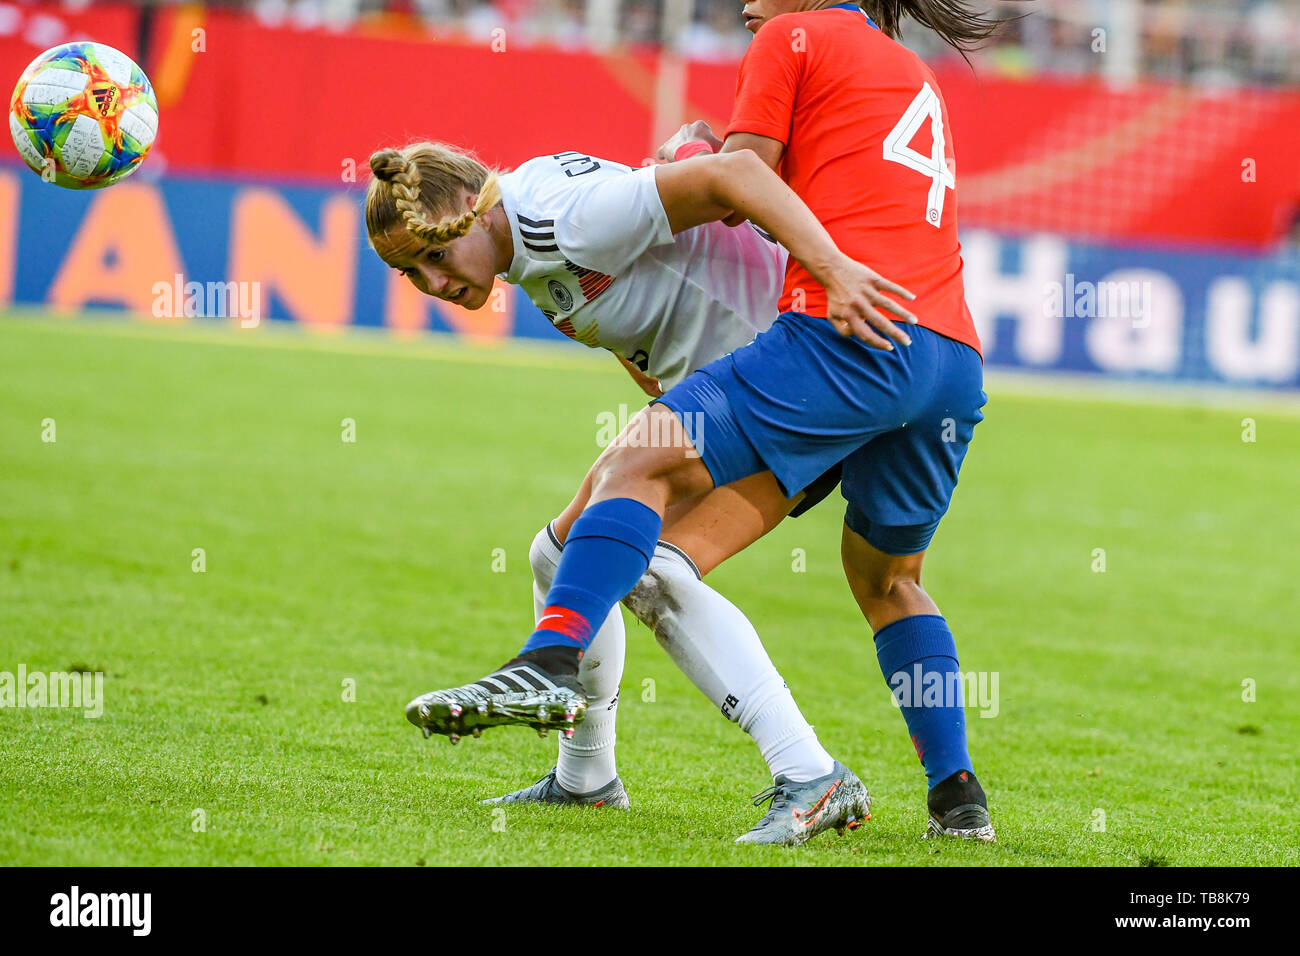 Regensburg, Germany. 30th May, 2019. Football, women: International matches, Germany - Chile in the Continental Arena. Turid Knaak of Germany on the ball. Credit: Armin Weigel/dpa/Alamy Live News - Stock Image